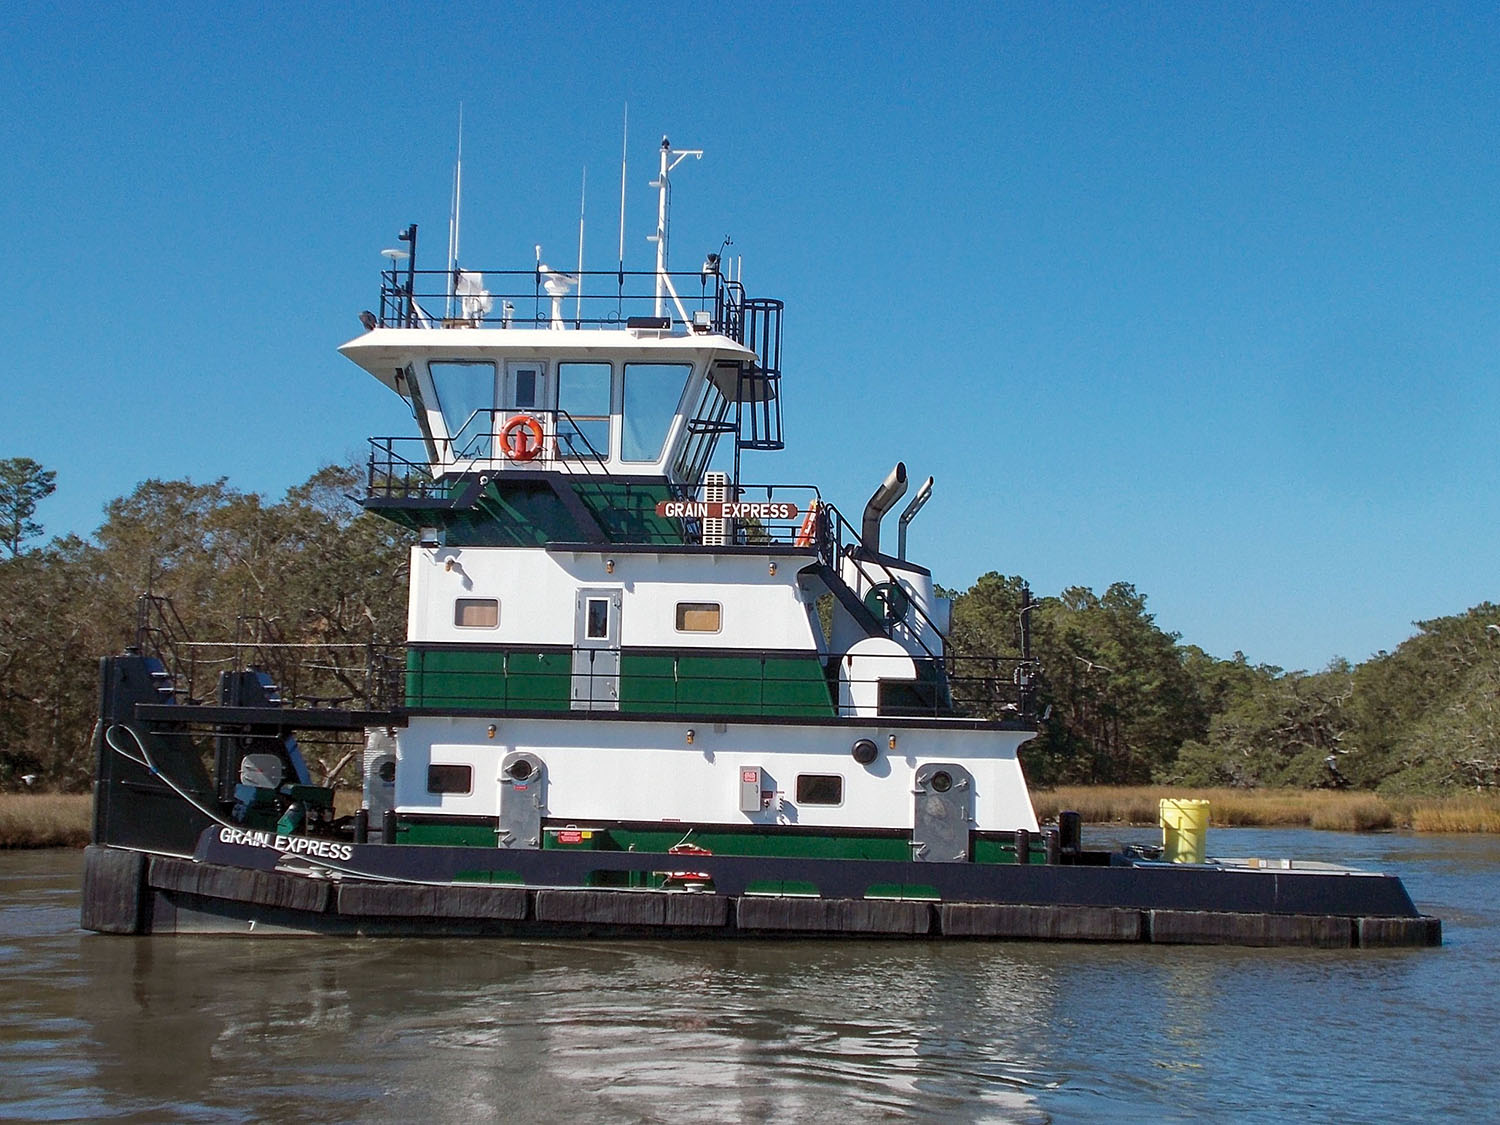 The Grain Express is the second of four towboats Master Marine is building for Plimsoll Marine.